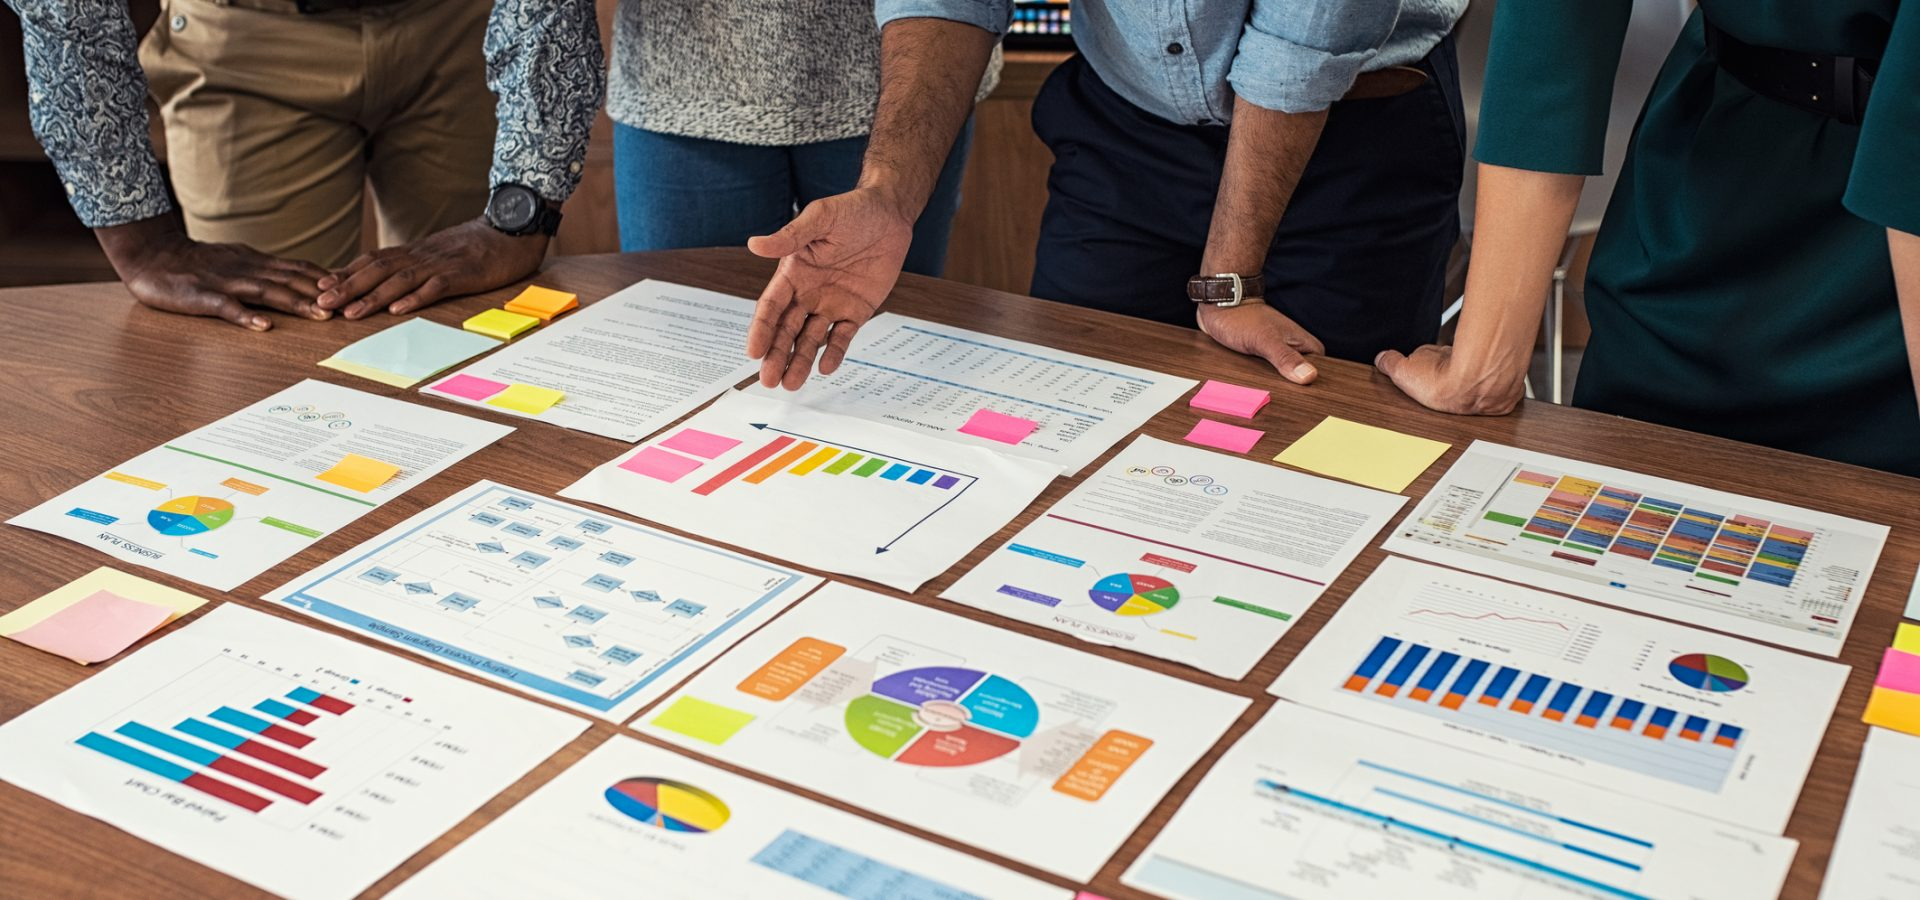 Financial and business documents on table with multiethnic hands working on it. Latin business manager with colleagues working on new startup project. Closeup business man and businesswoman hands understanding pie and bar graphs during meeting.